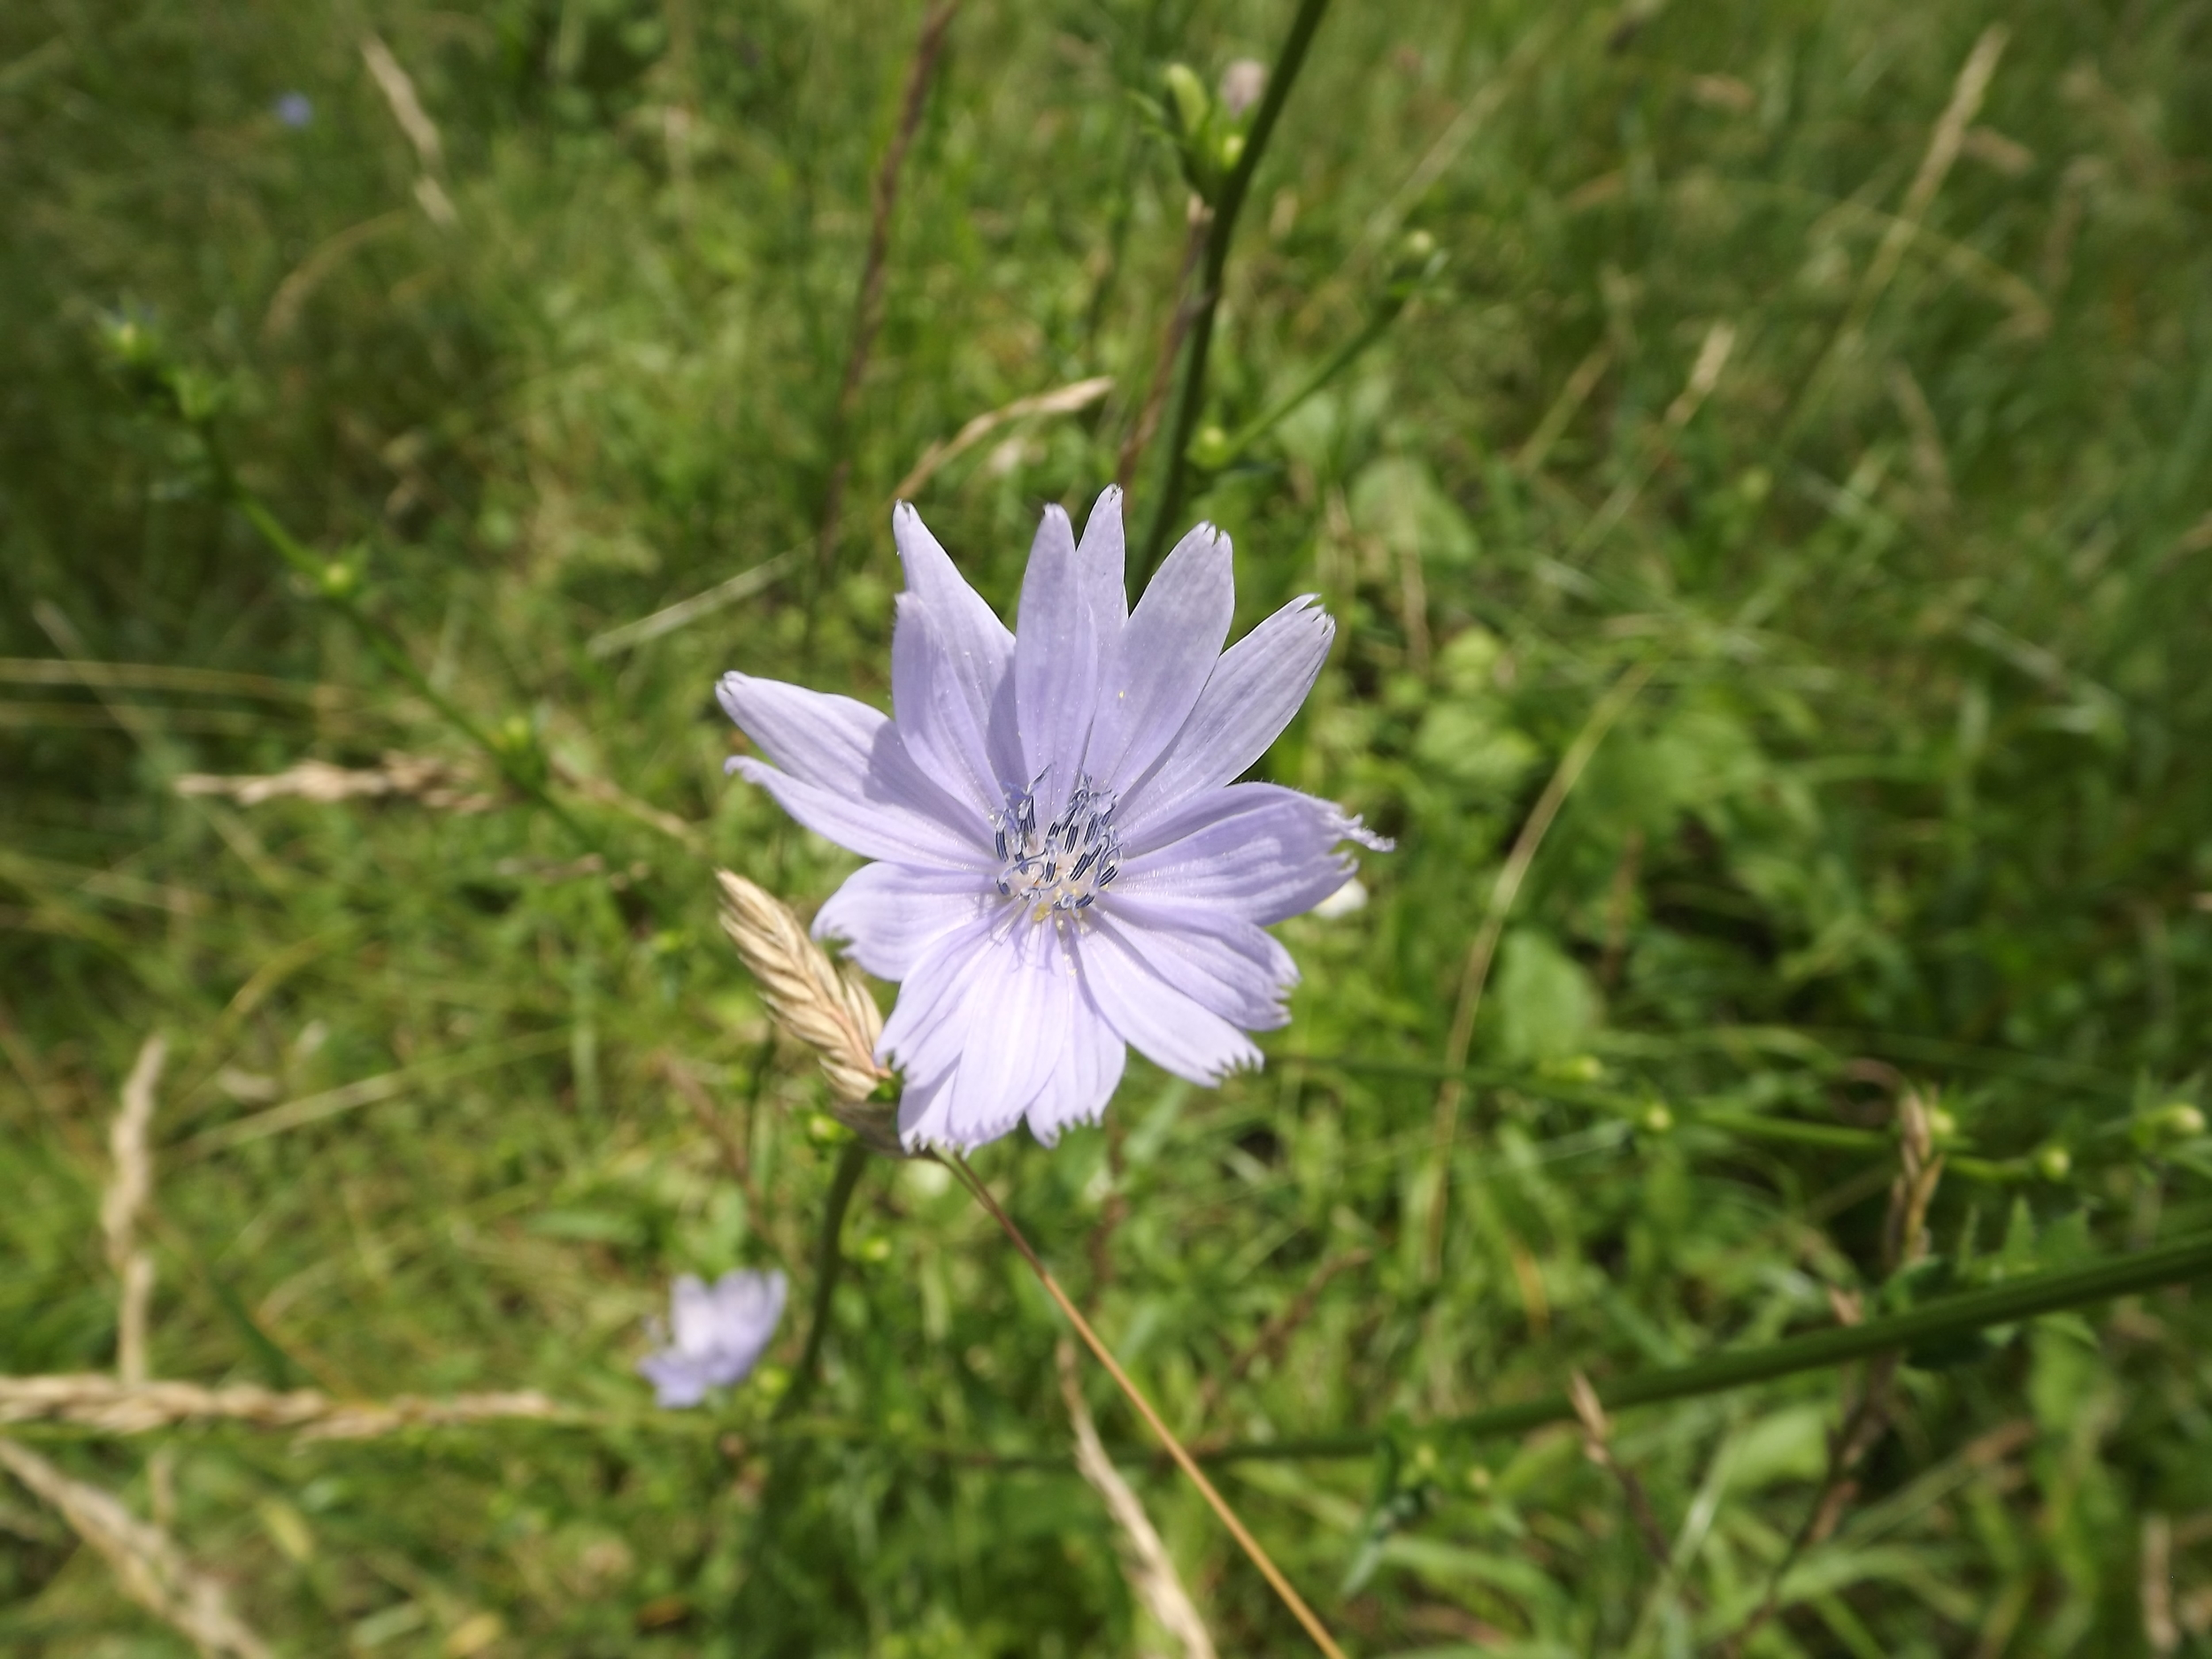 Common Chicory ( Cichorium intybus ) - Common Chicory is not native to our area and is considered by some as an invasive. Howerver I think its bluish-white blossoms are very pretty and late on sunny days, they will actually close to protect the delicate petals from the sun's heat.